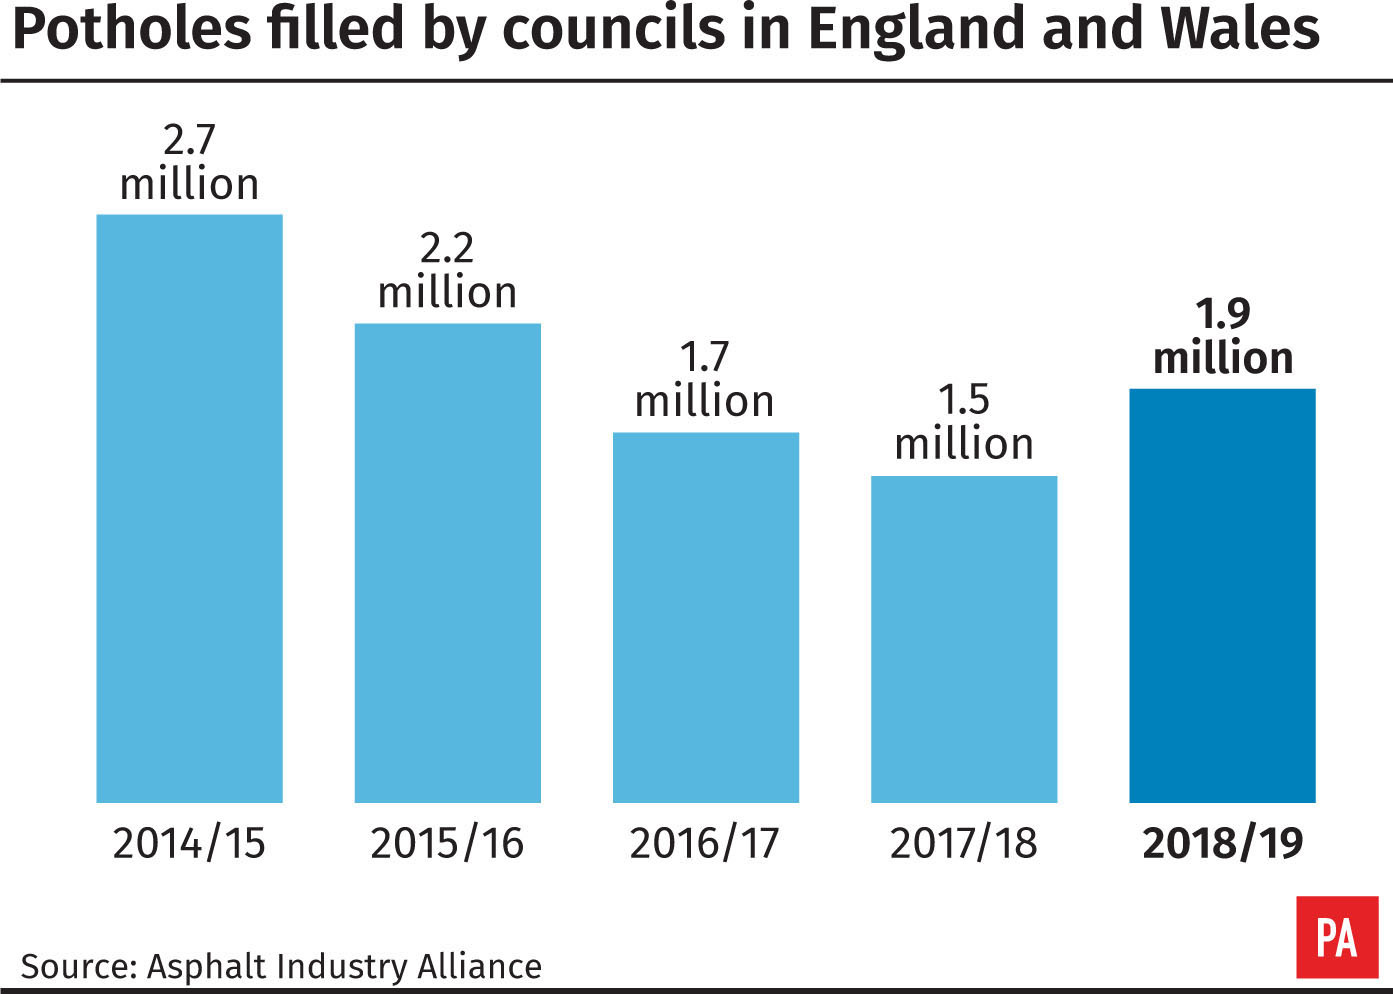 Potholes filled by councils in England and Wales